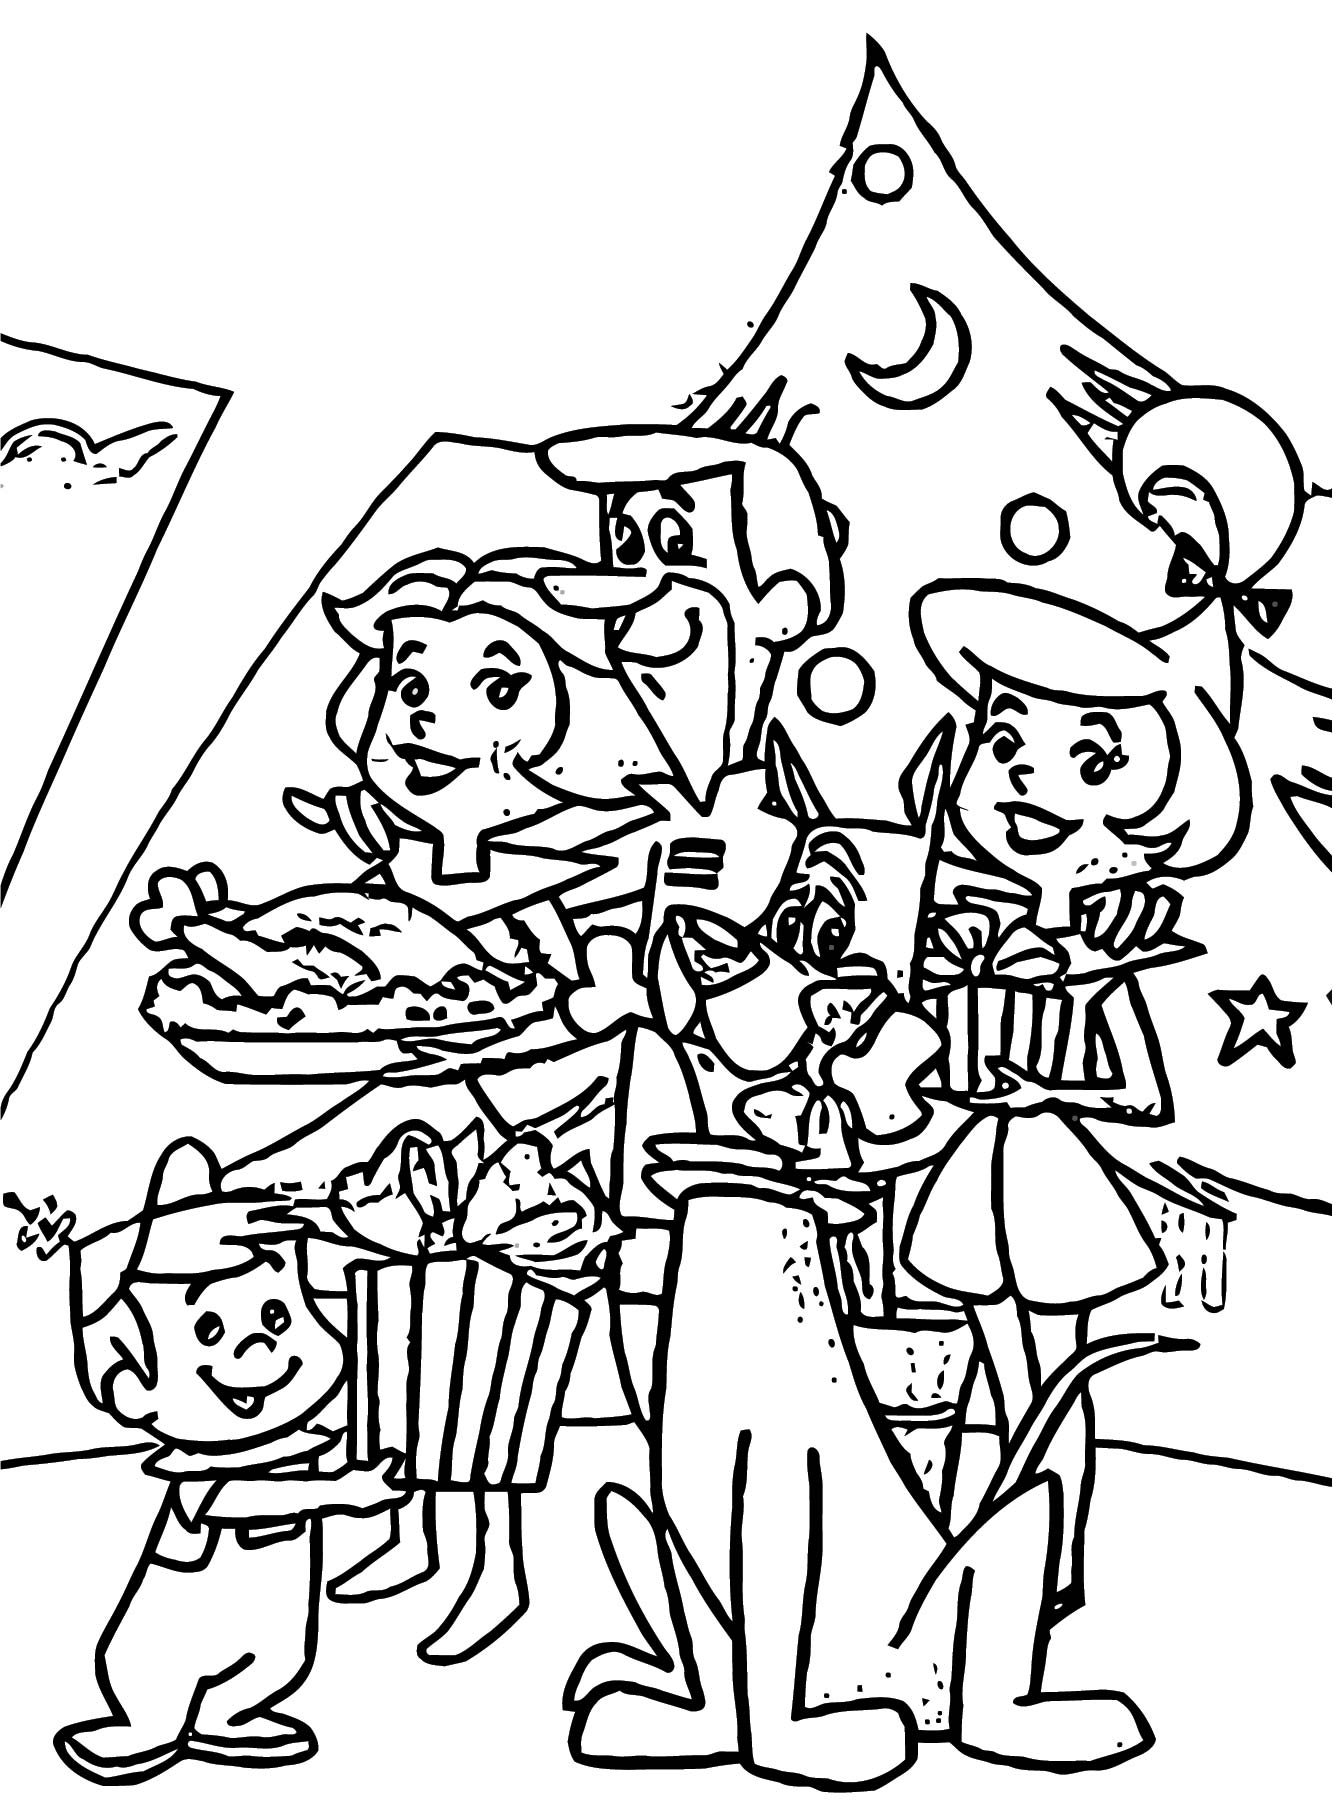 Jetsons Coloring Page 24